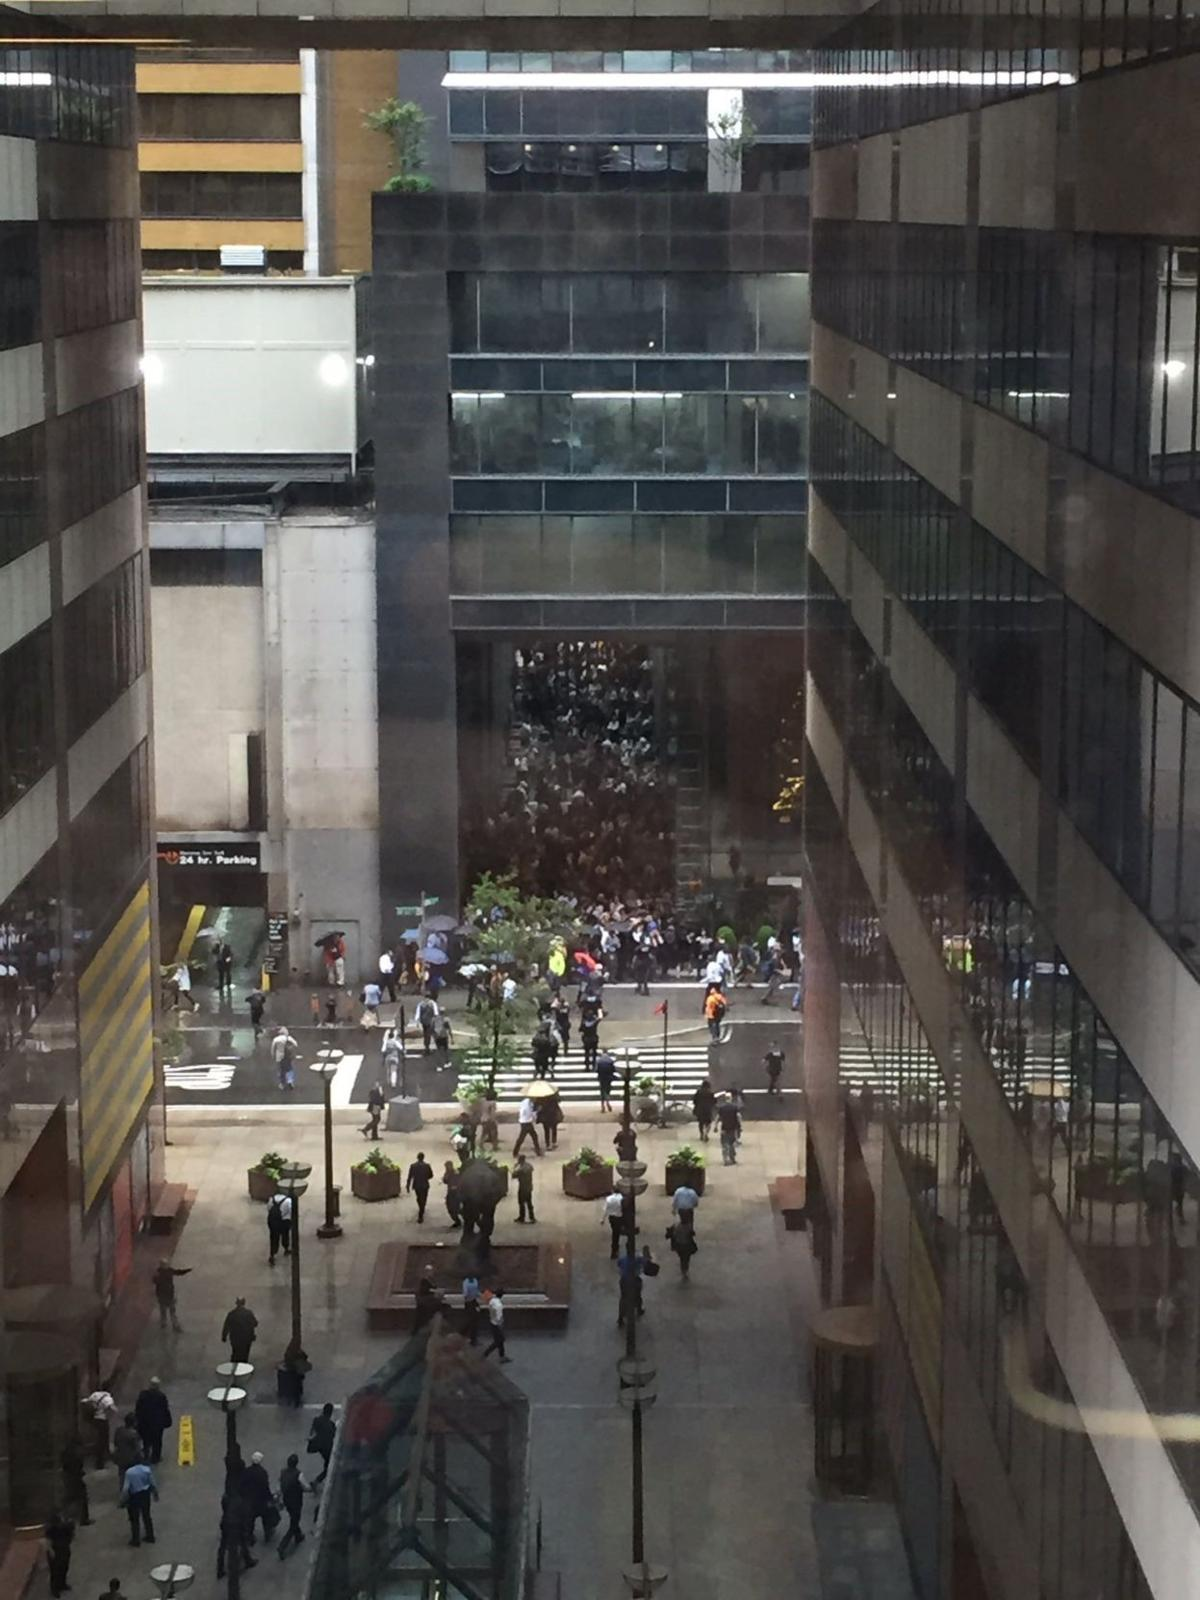 Scene after helicopter crash in NYC